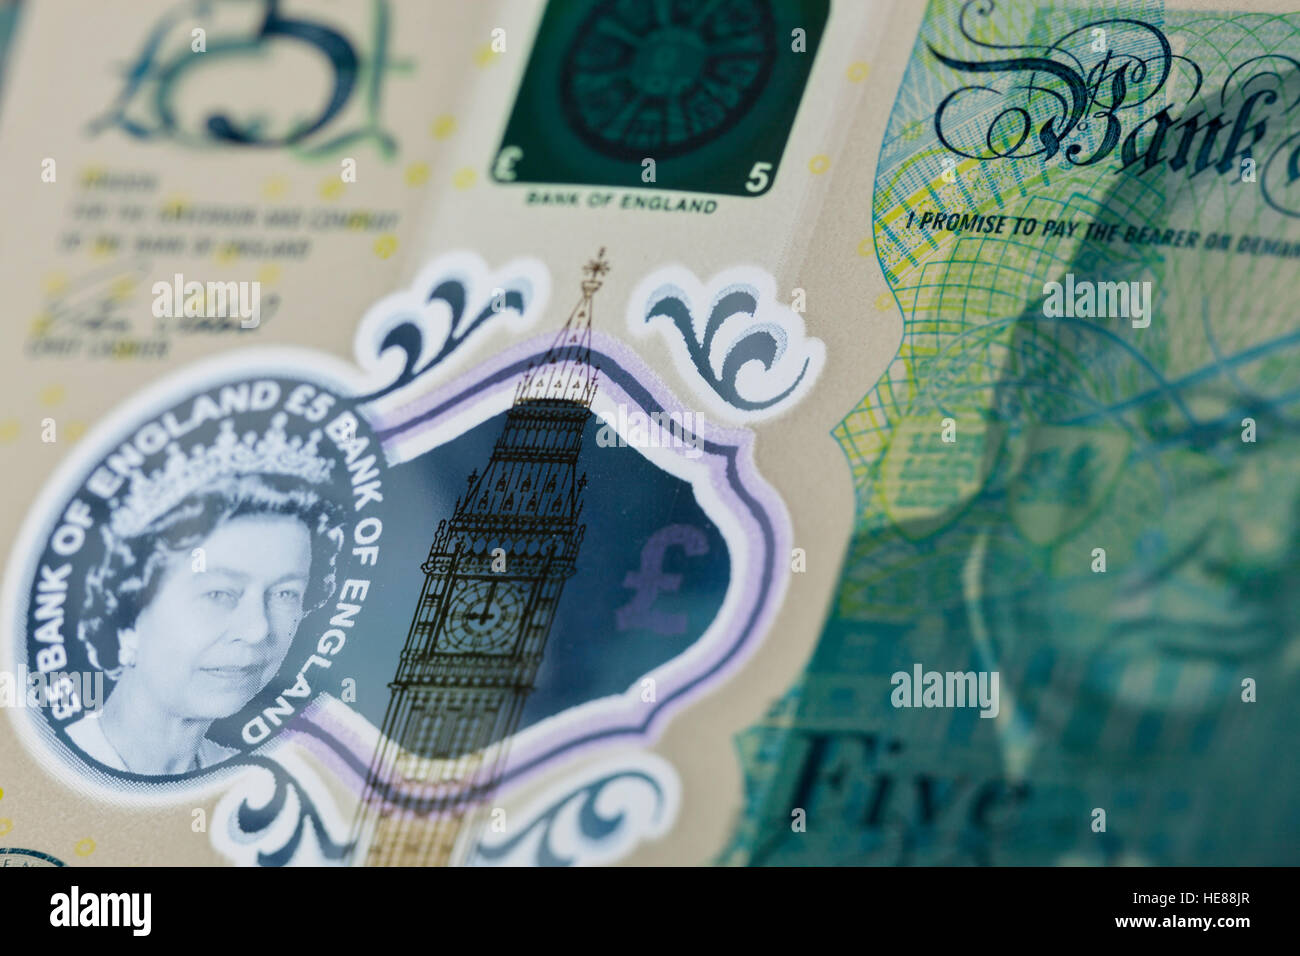 New polymer five pound note featuring Winston Churchill - Stock Image